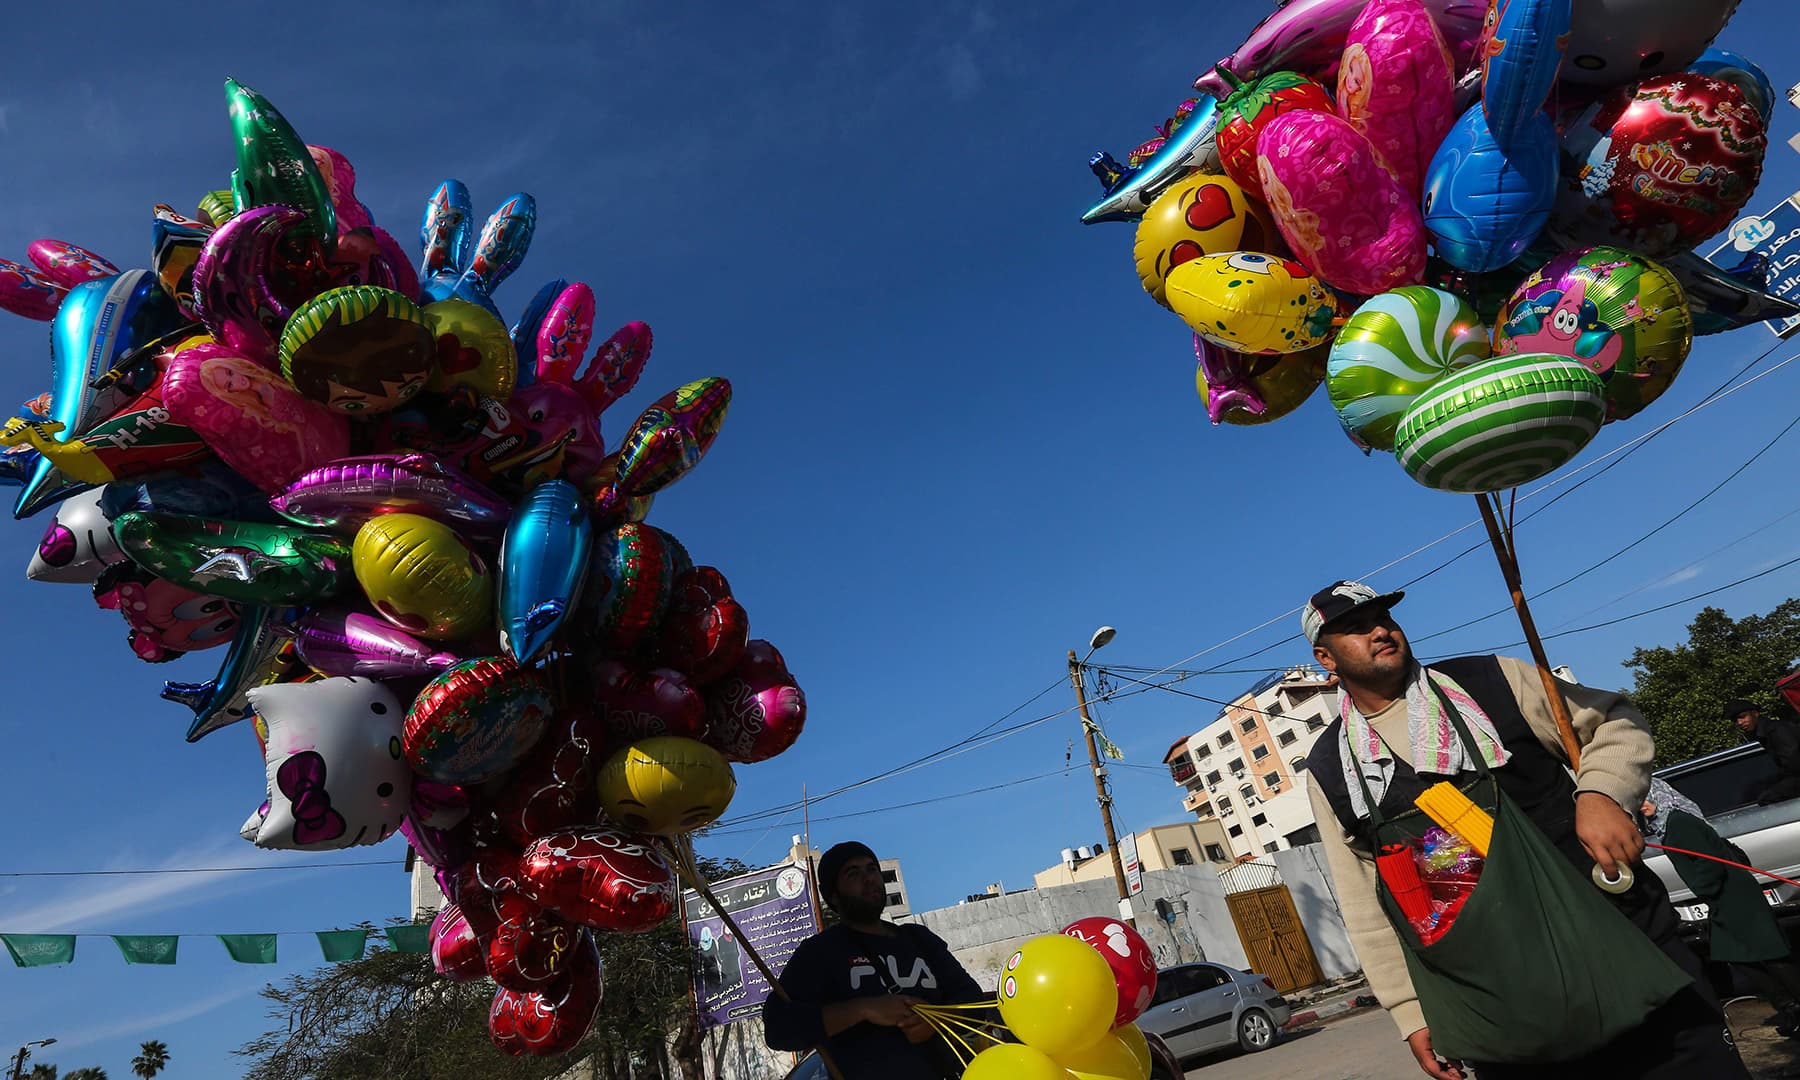 A Palestinian man sells balloons ahead of New Year's celebrations in Gaza City on December 31. — AFP